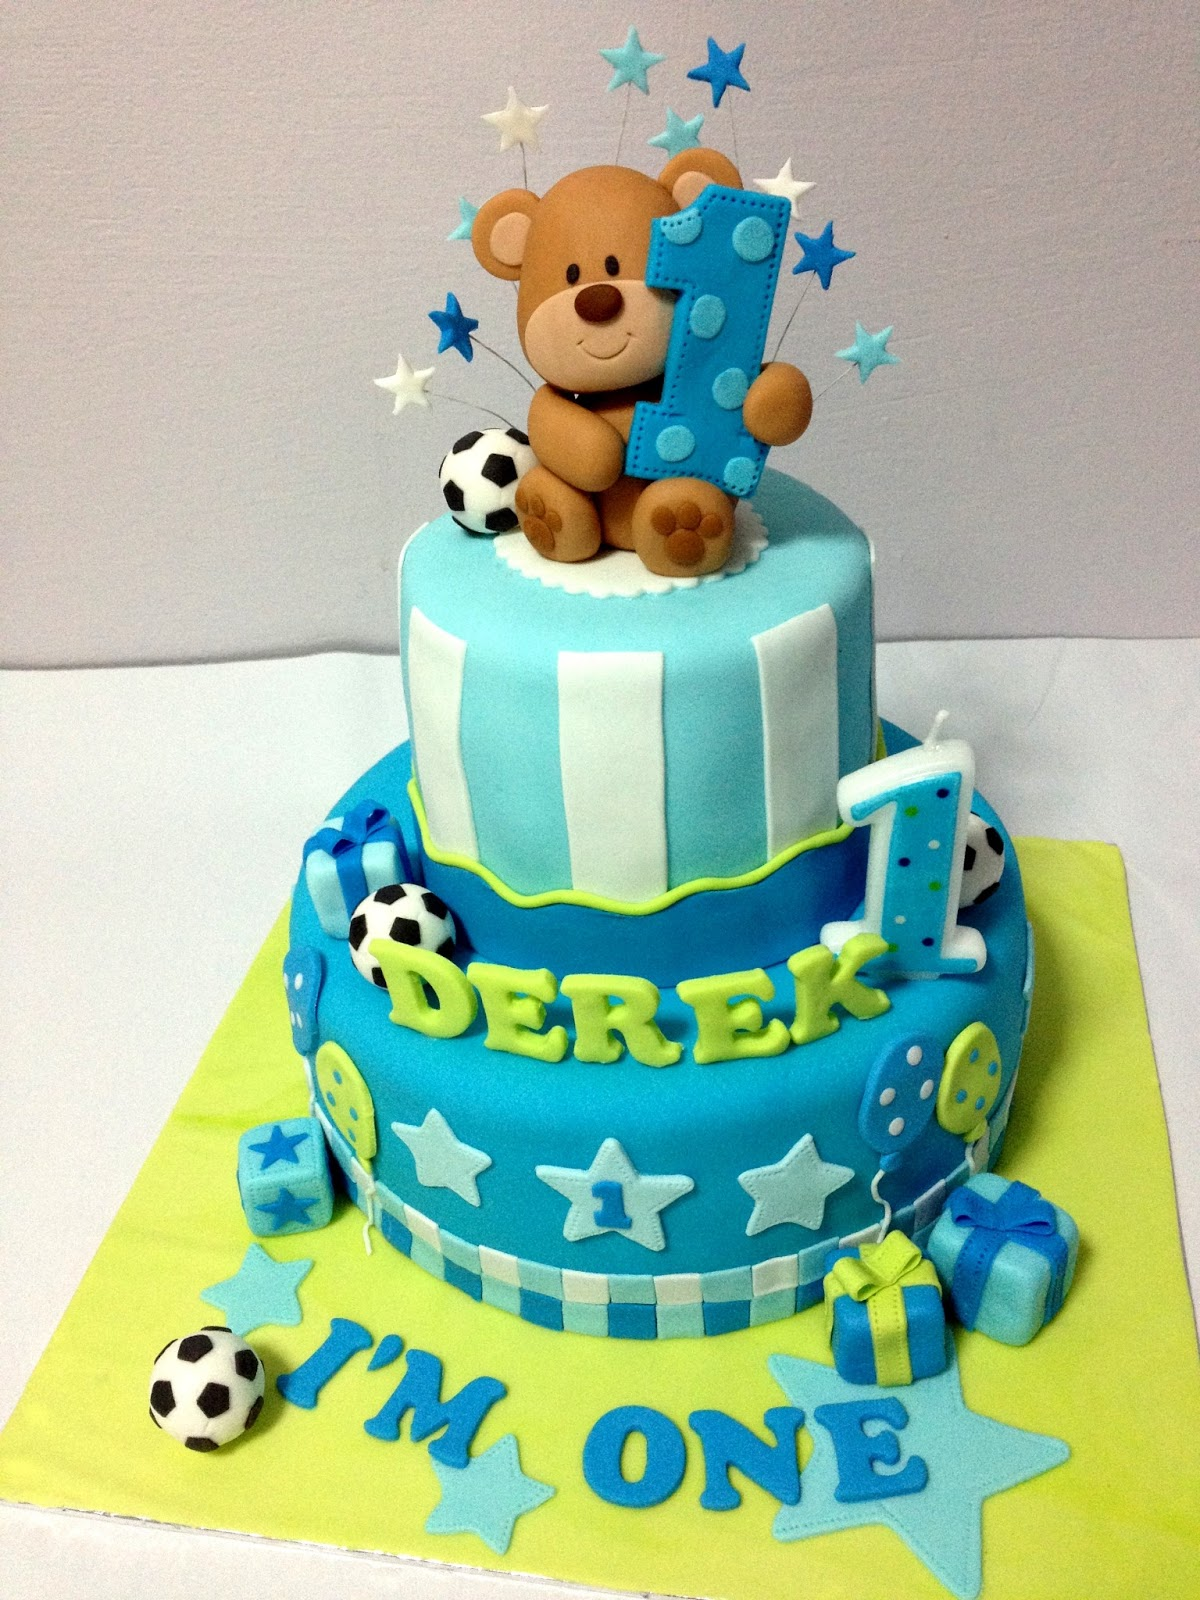 First Happy Birthday Cake Images With Teddy Bear